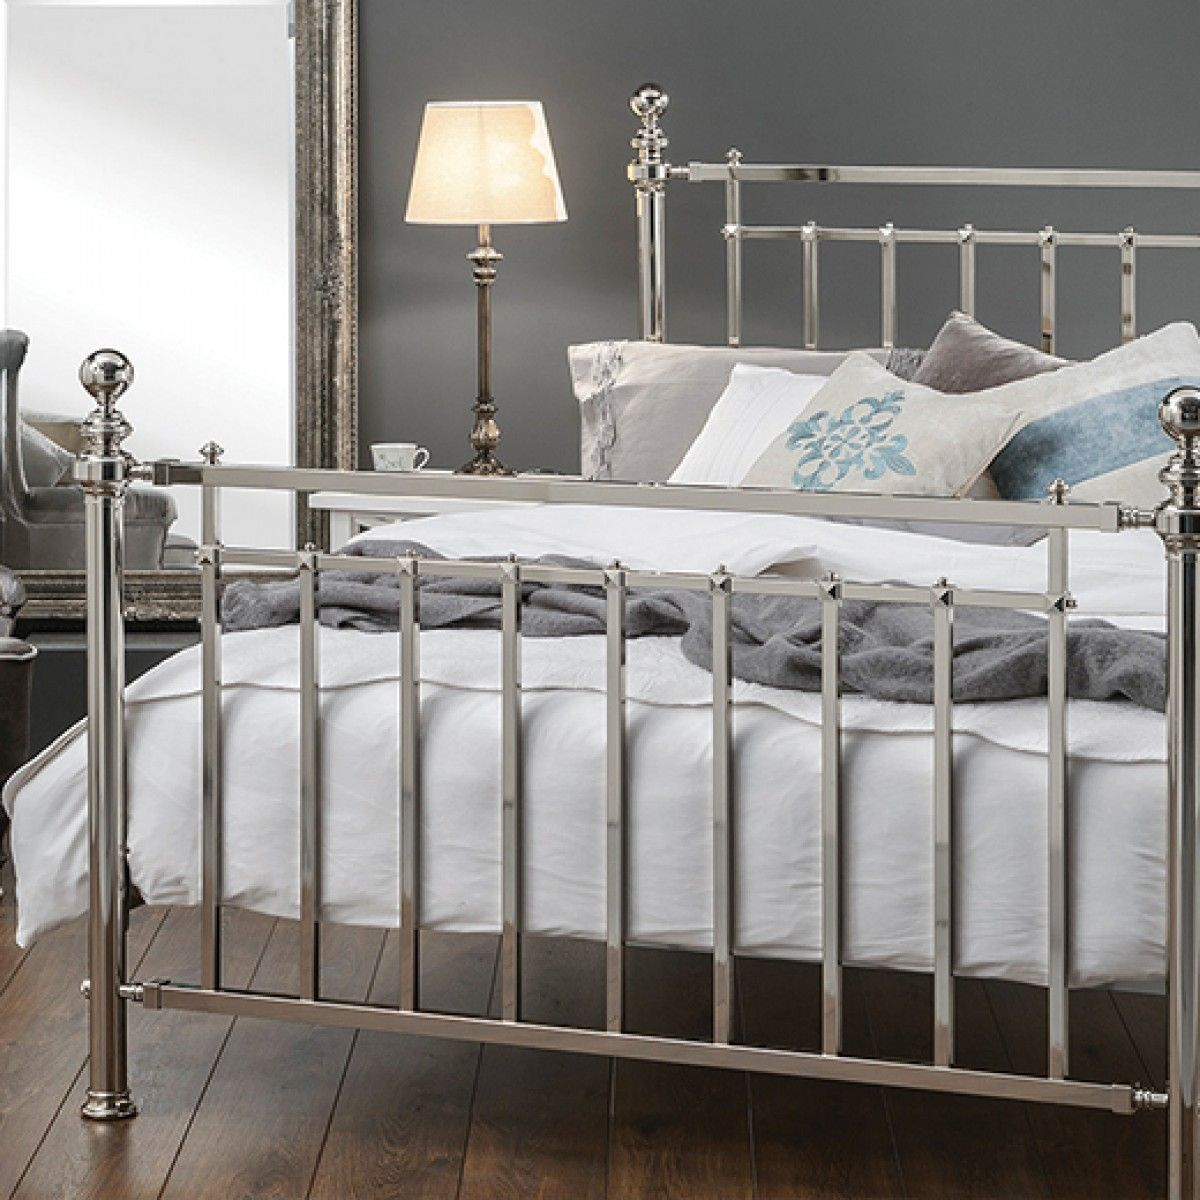 buy online early settler iron bed frame bed